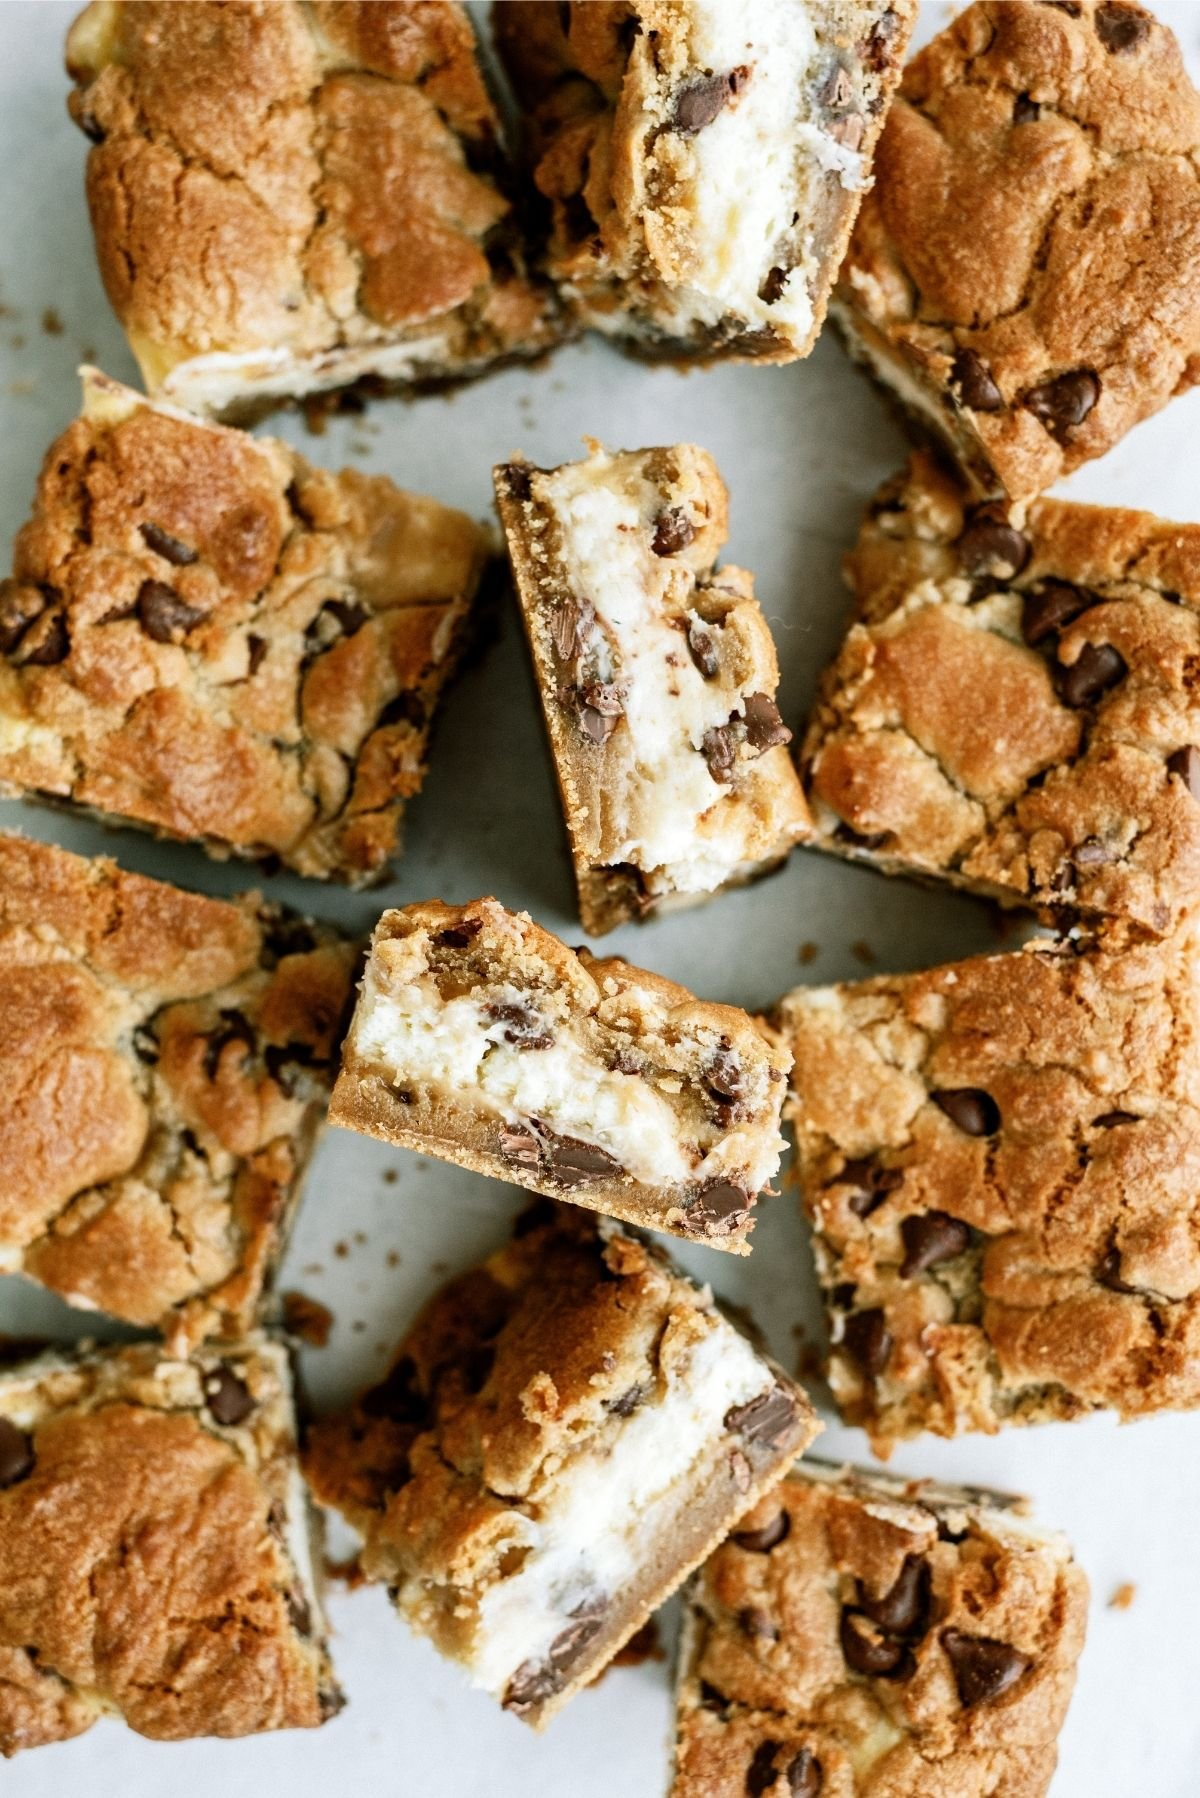 Chocolate Chip Cheesecake Blondies cut into squares